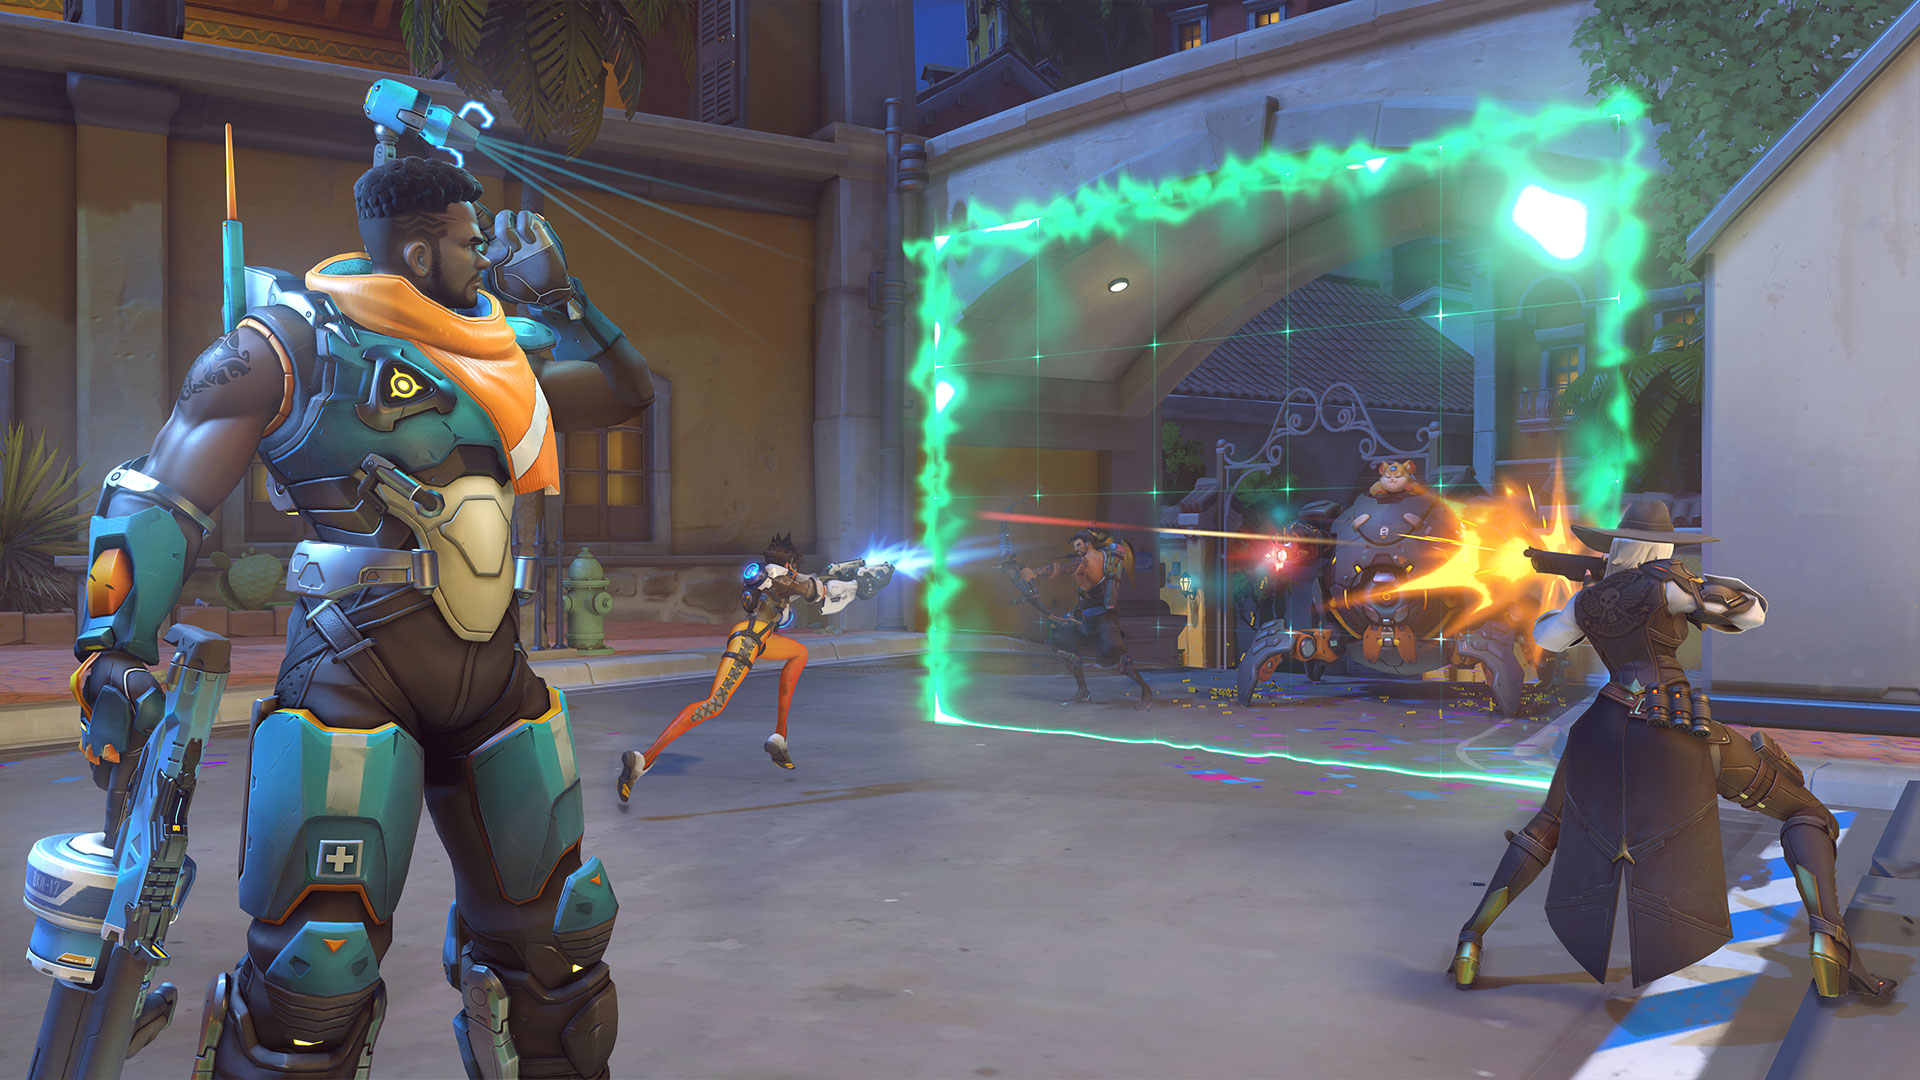 Overwatch Free To Play For A Limited Time